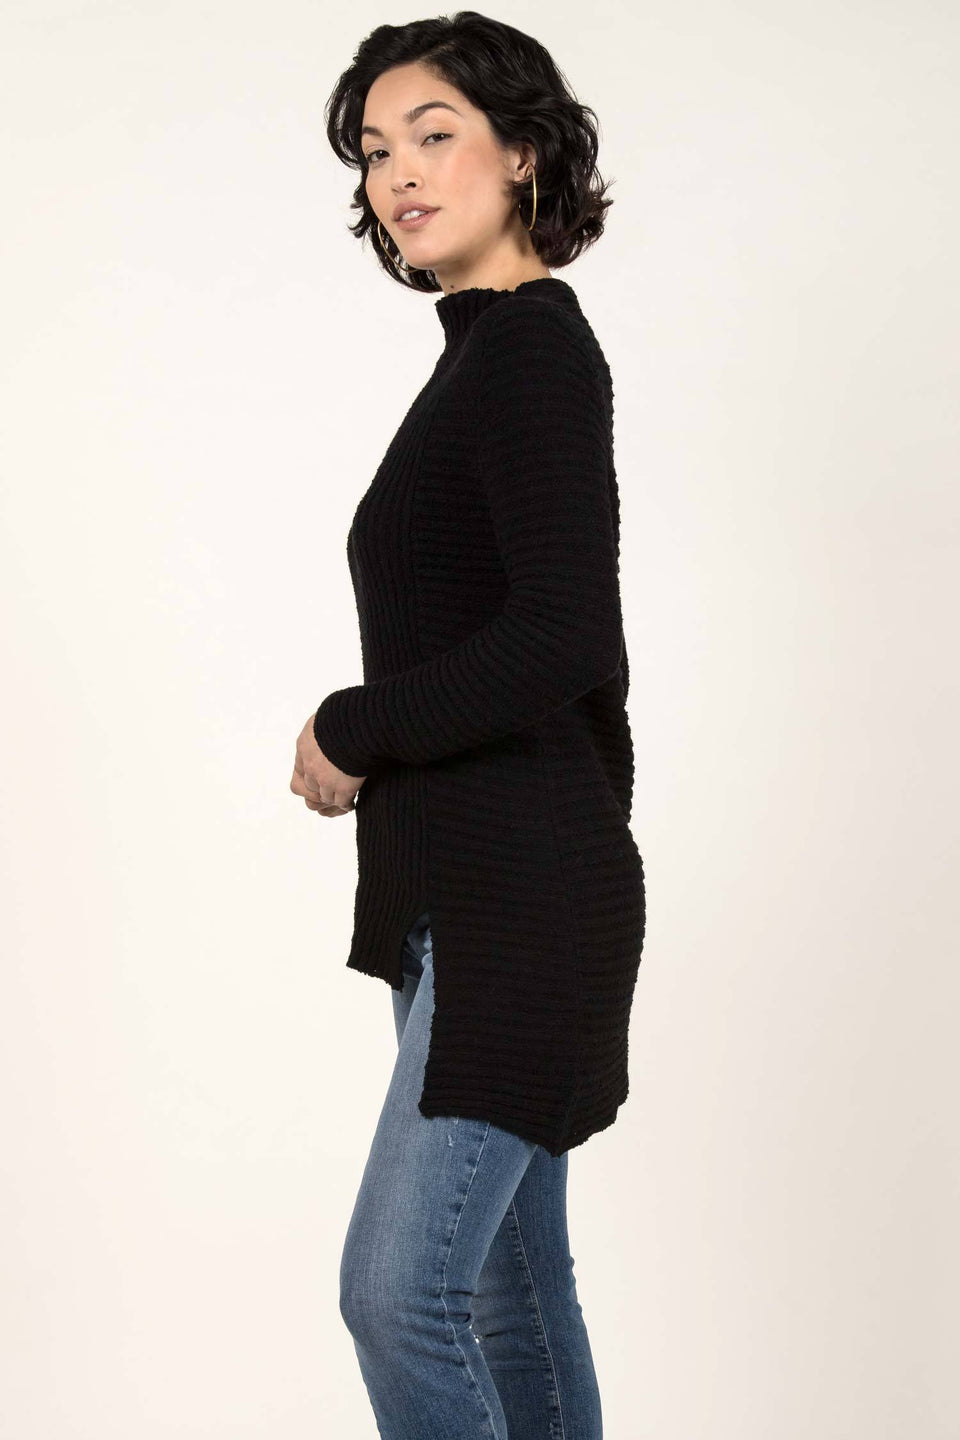 Boucle Rib Tunic in Black